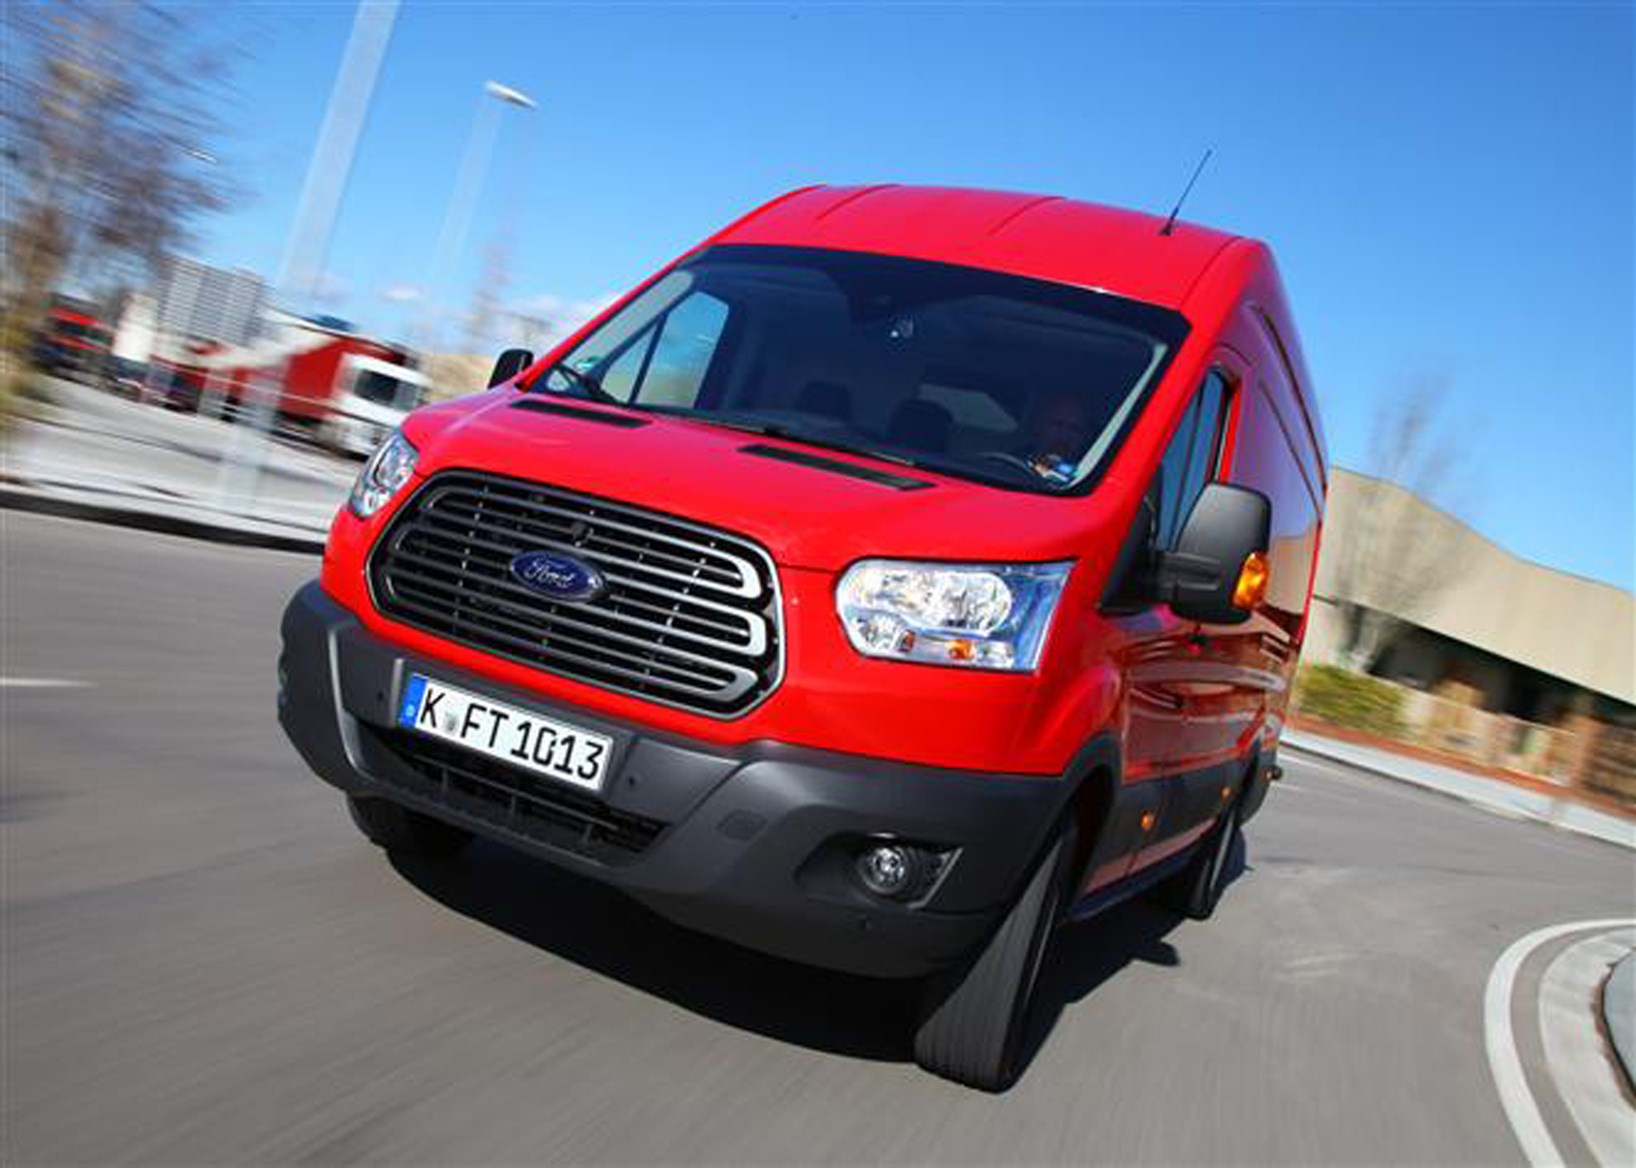 Diesel engine ecoblue engines will appear in transit vans first before being rolled out across certain ford car models